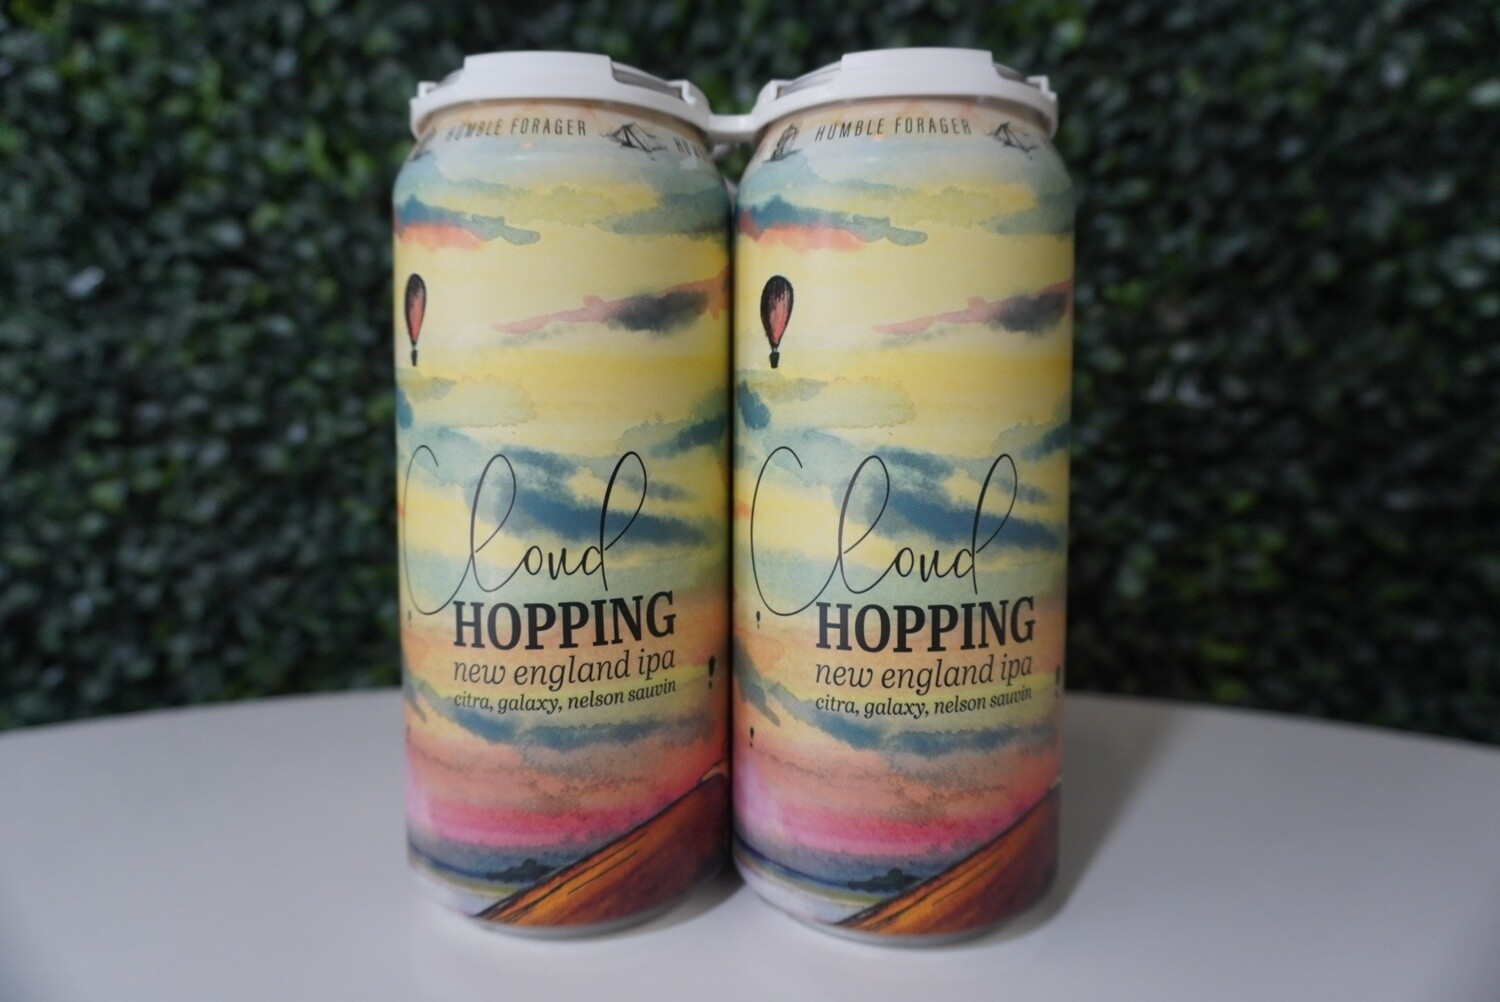 Humble Forager - Cloud Hopping (Vol 2) - New England IPA - 6% ABV - 4 Pack